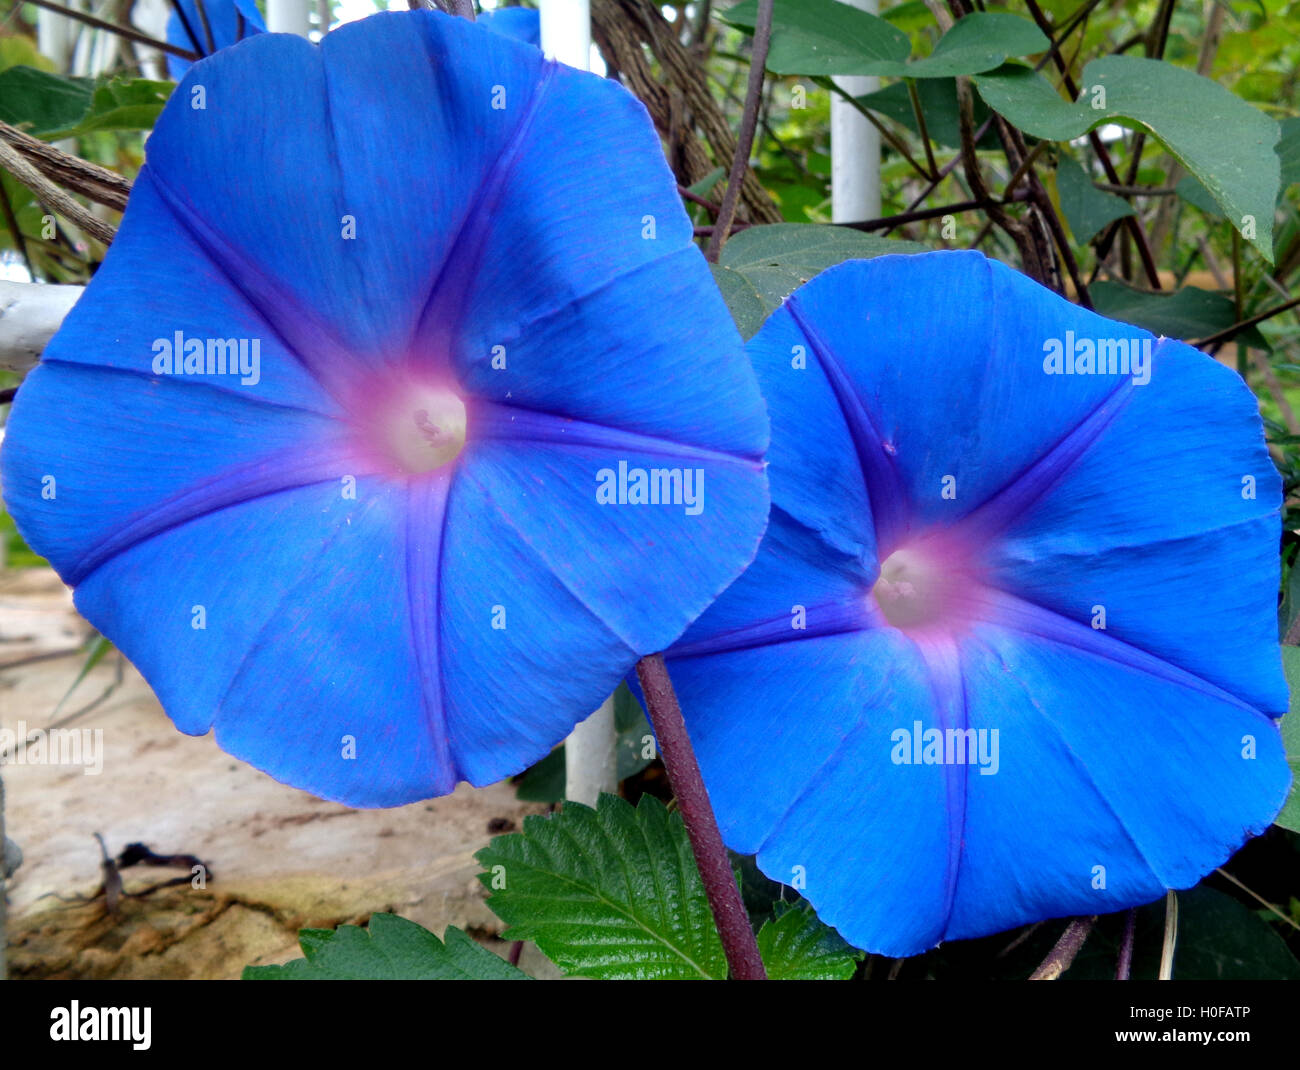 Close-up of Two Blooming Blue Morning Glories - Stock Image